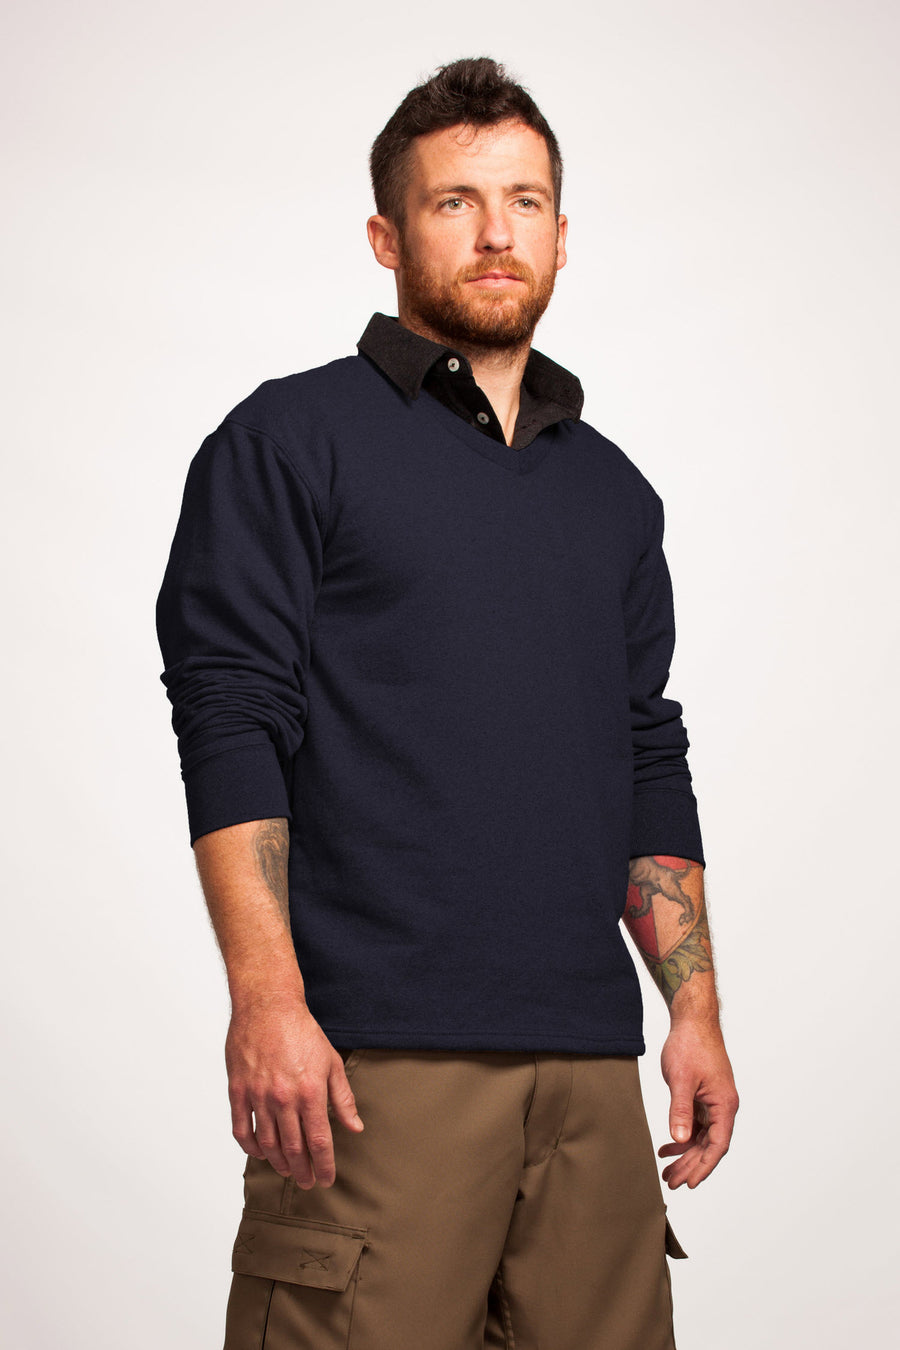 Men's Navy V-Neck Sweater